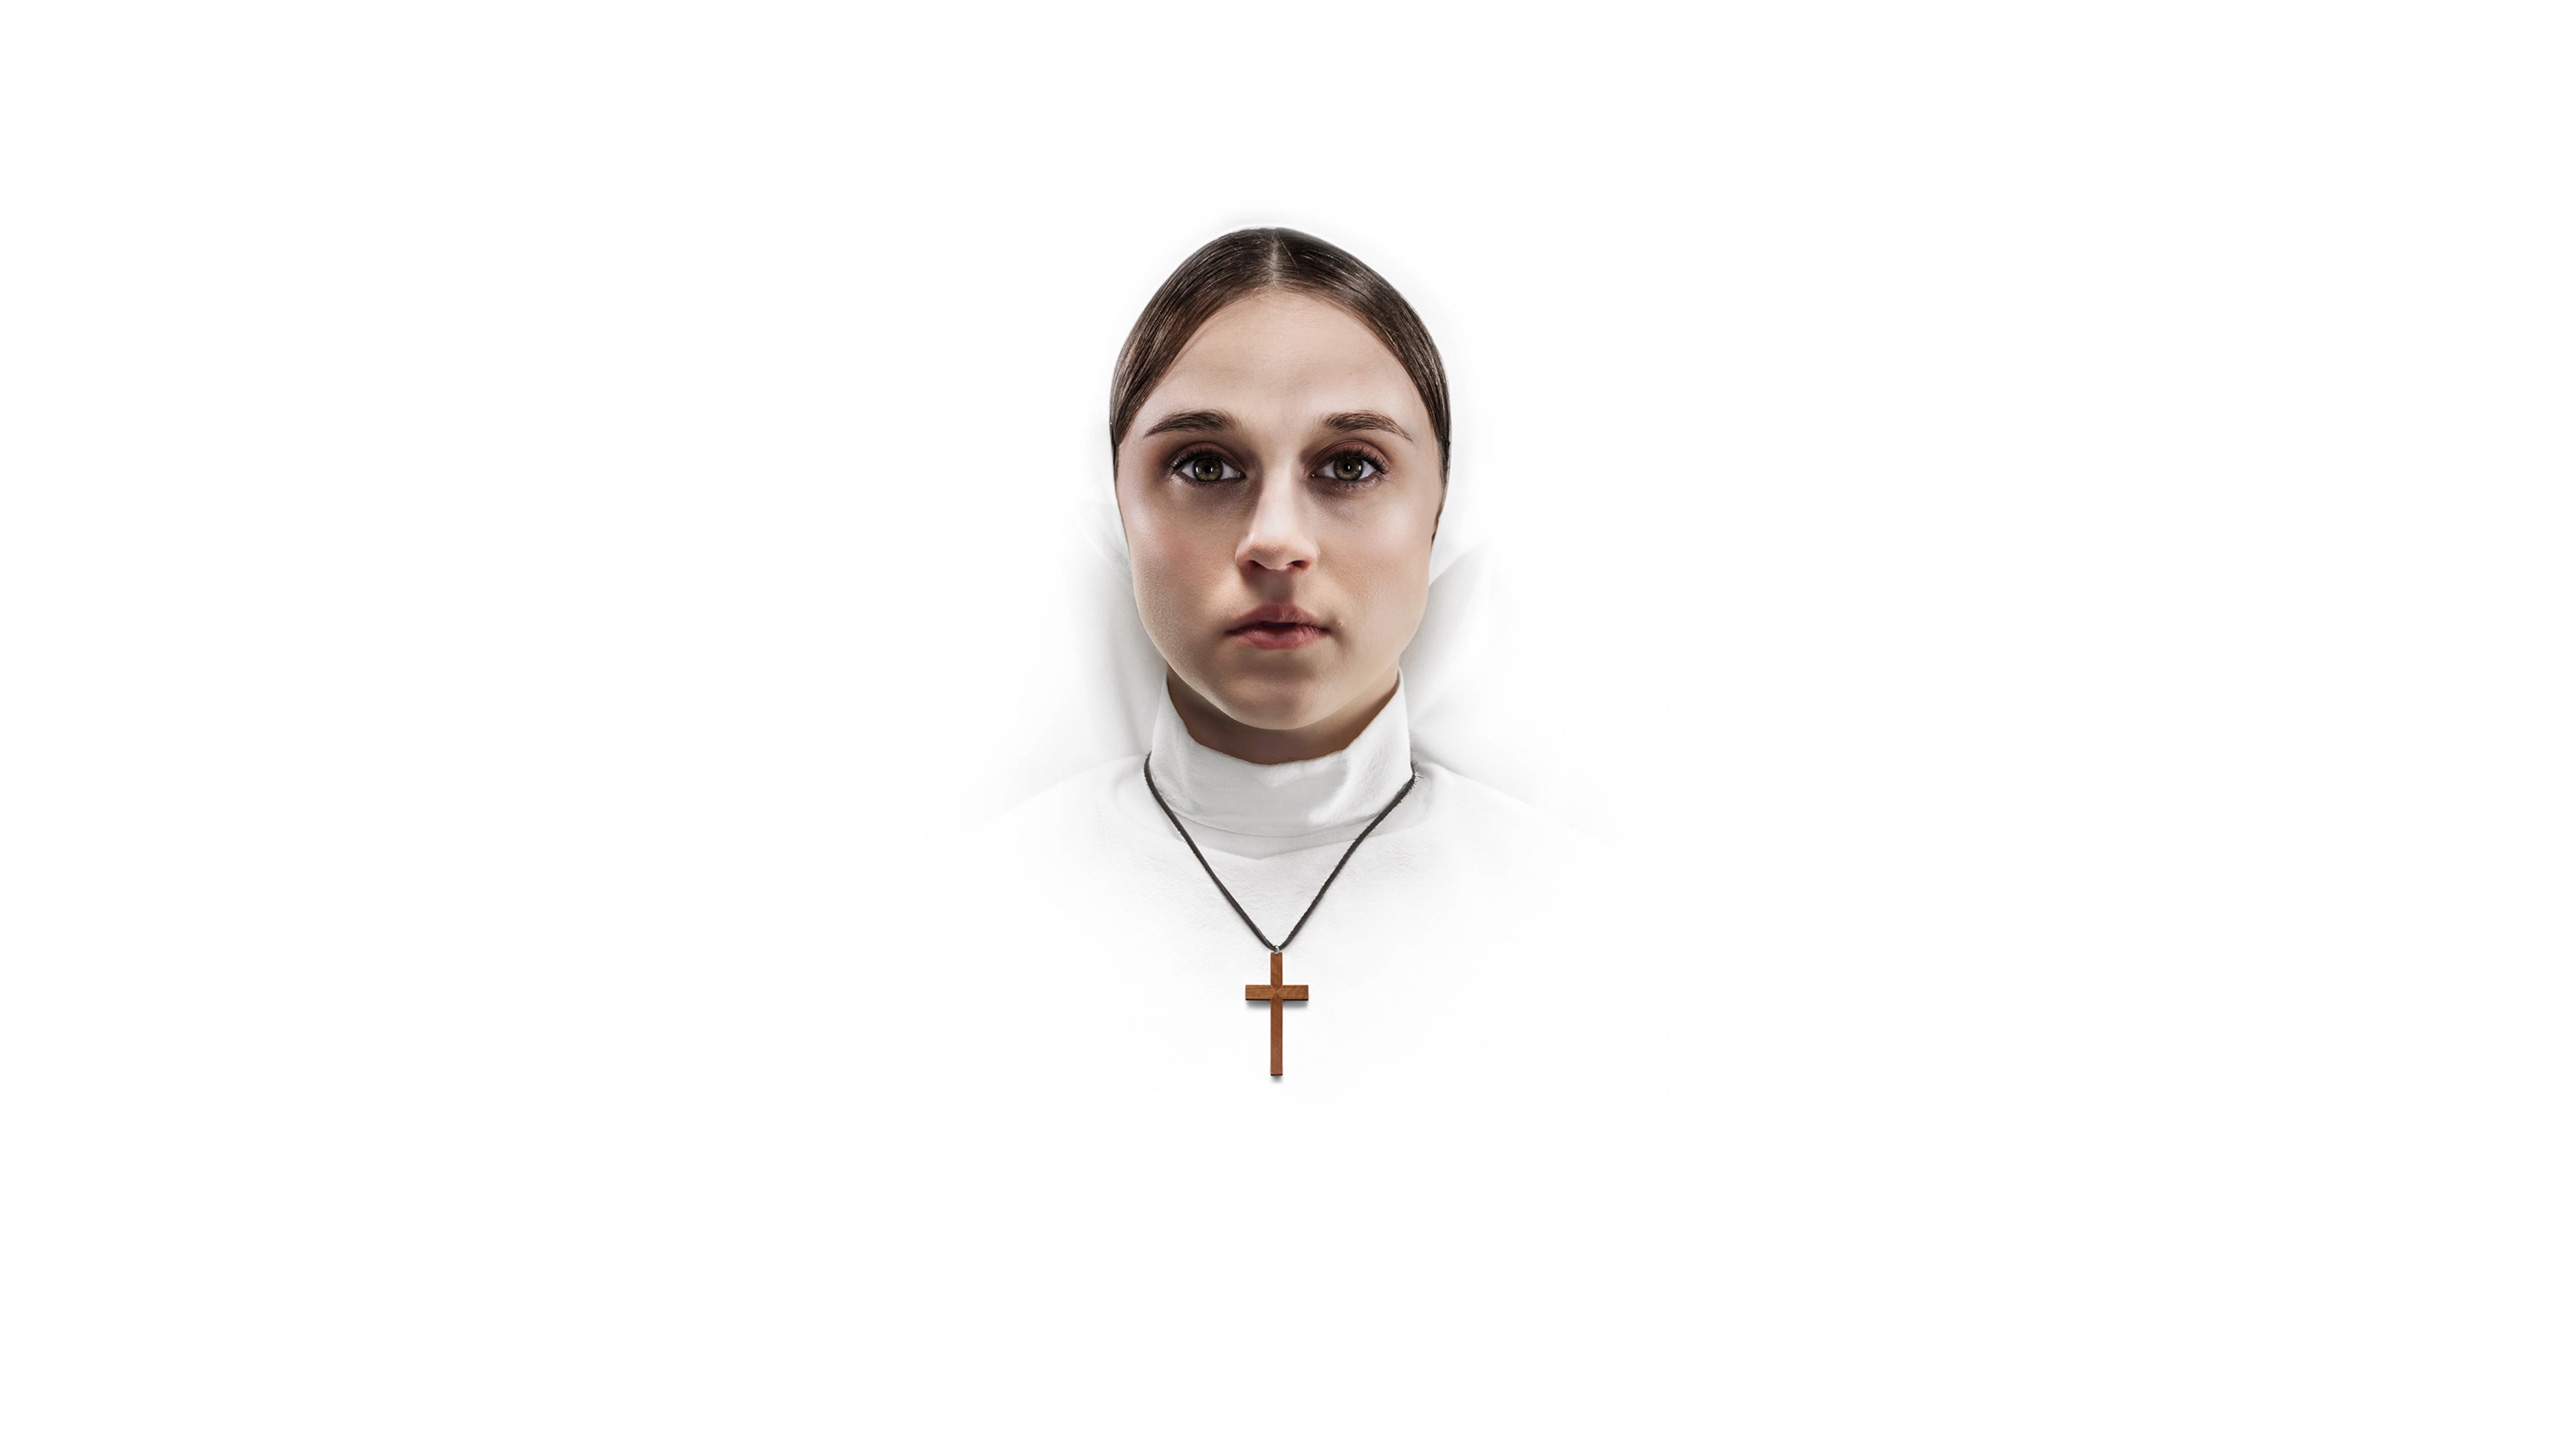 1366x768 The Nun Movie Key Art 1366x768 Resolution Hd 4k